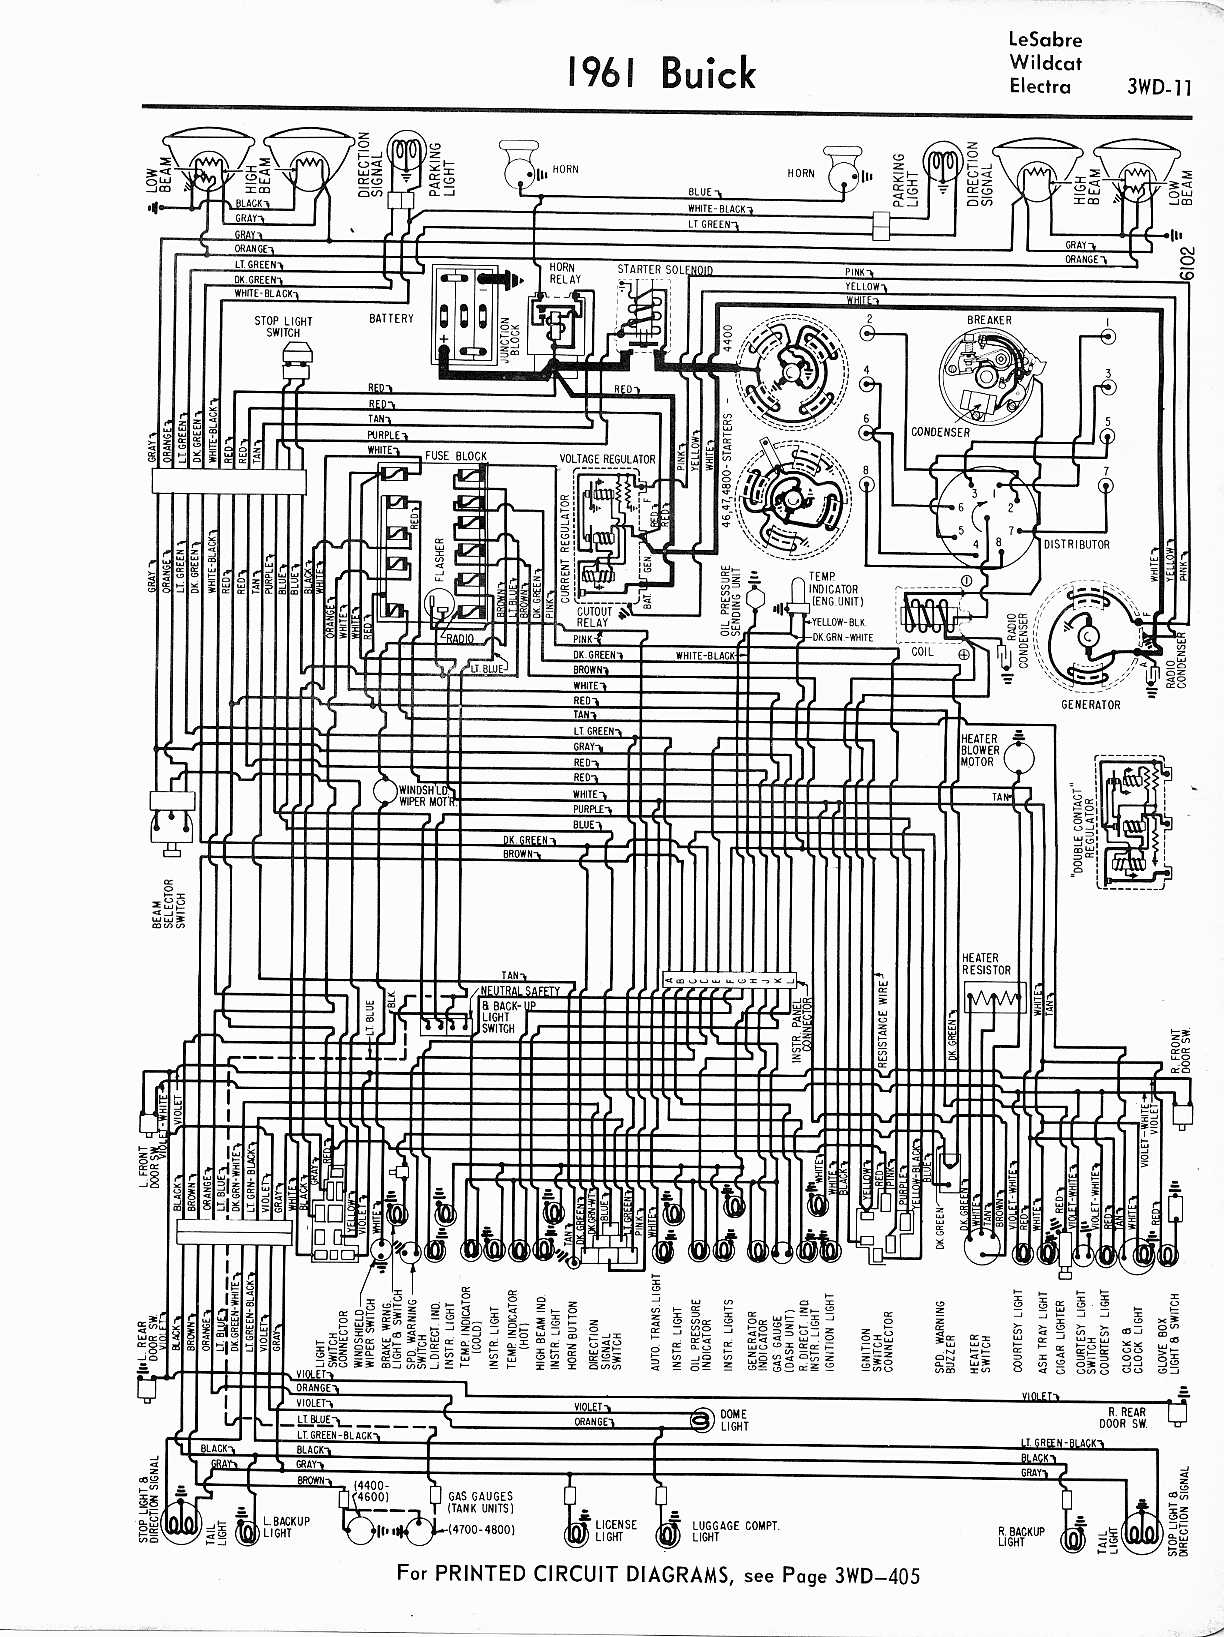 Wiring Diagram For 1962 Buick Lesabre Wildcat And Electra - Your